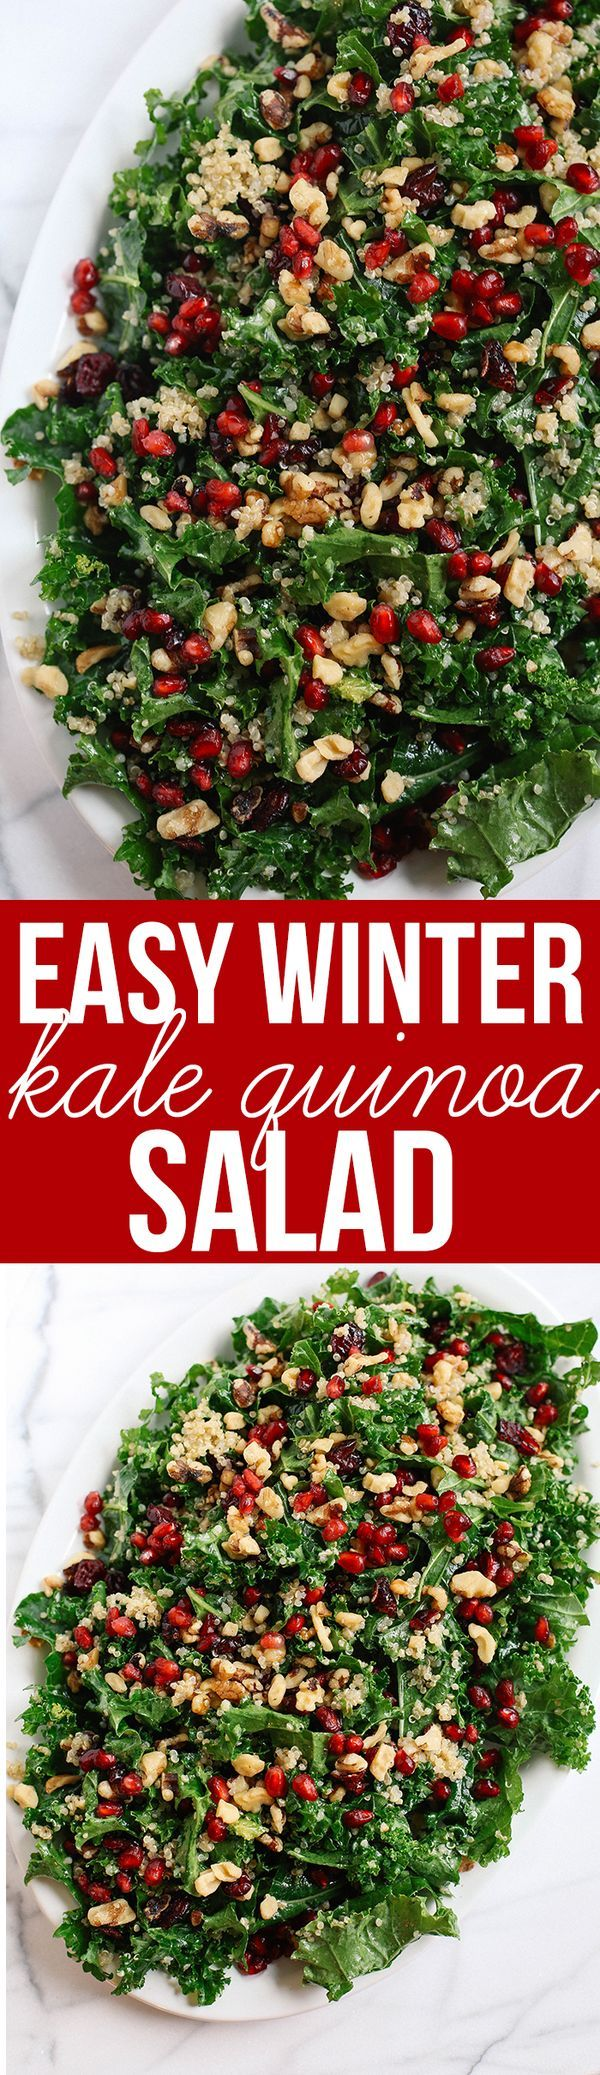 459dded884718e6823d91ca39c1ed491  holiday side dishes winter holidays This Winter Kale and Quinoa Salad makes the perfect healthy holiday side dish th...